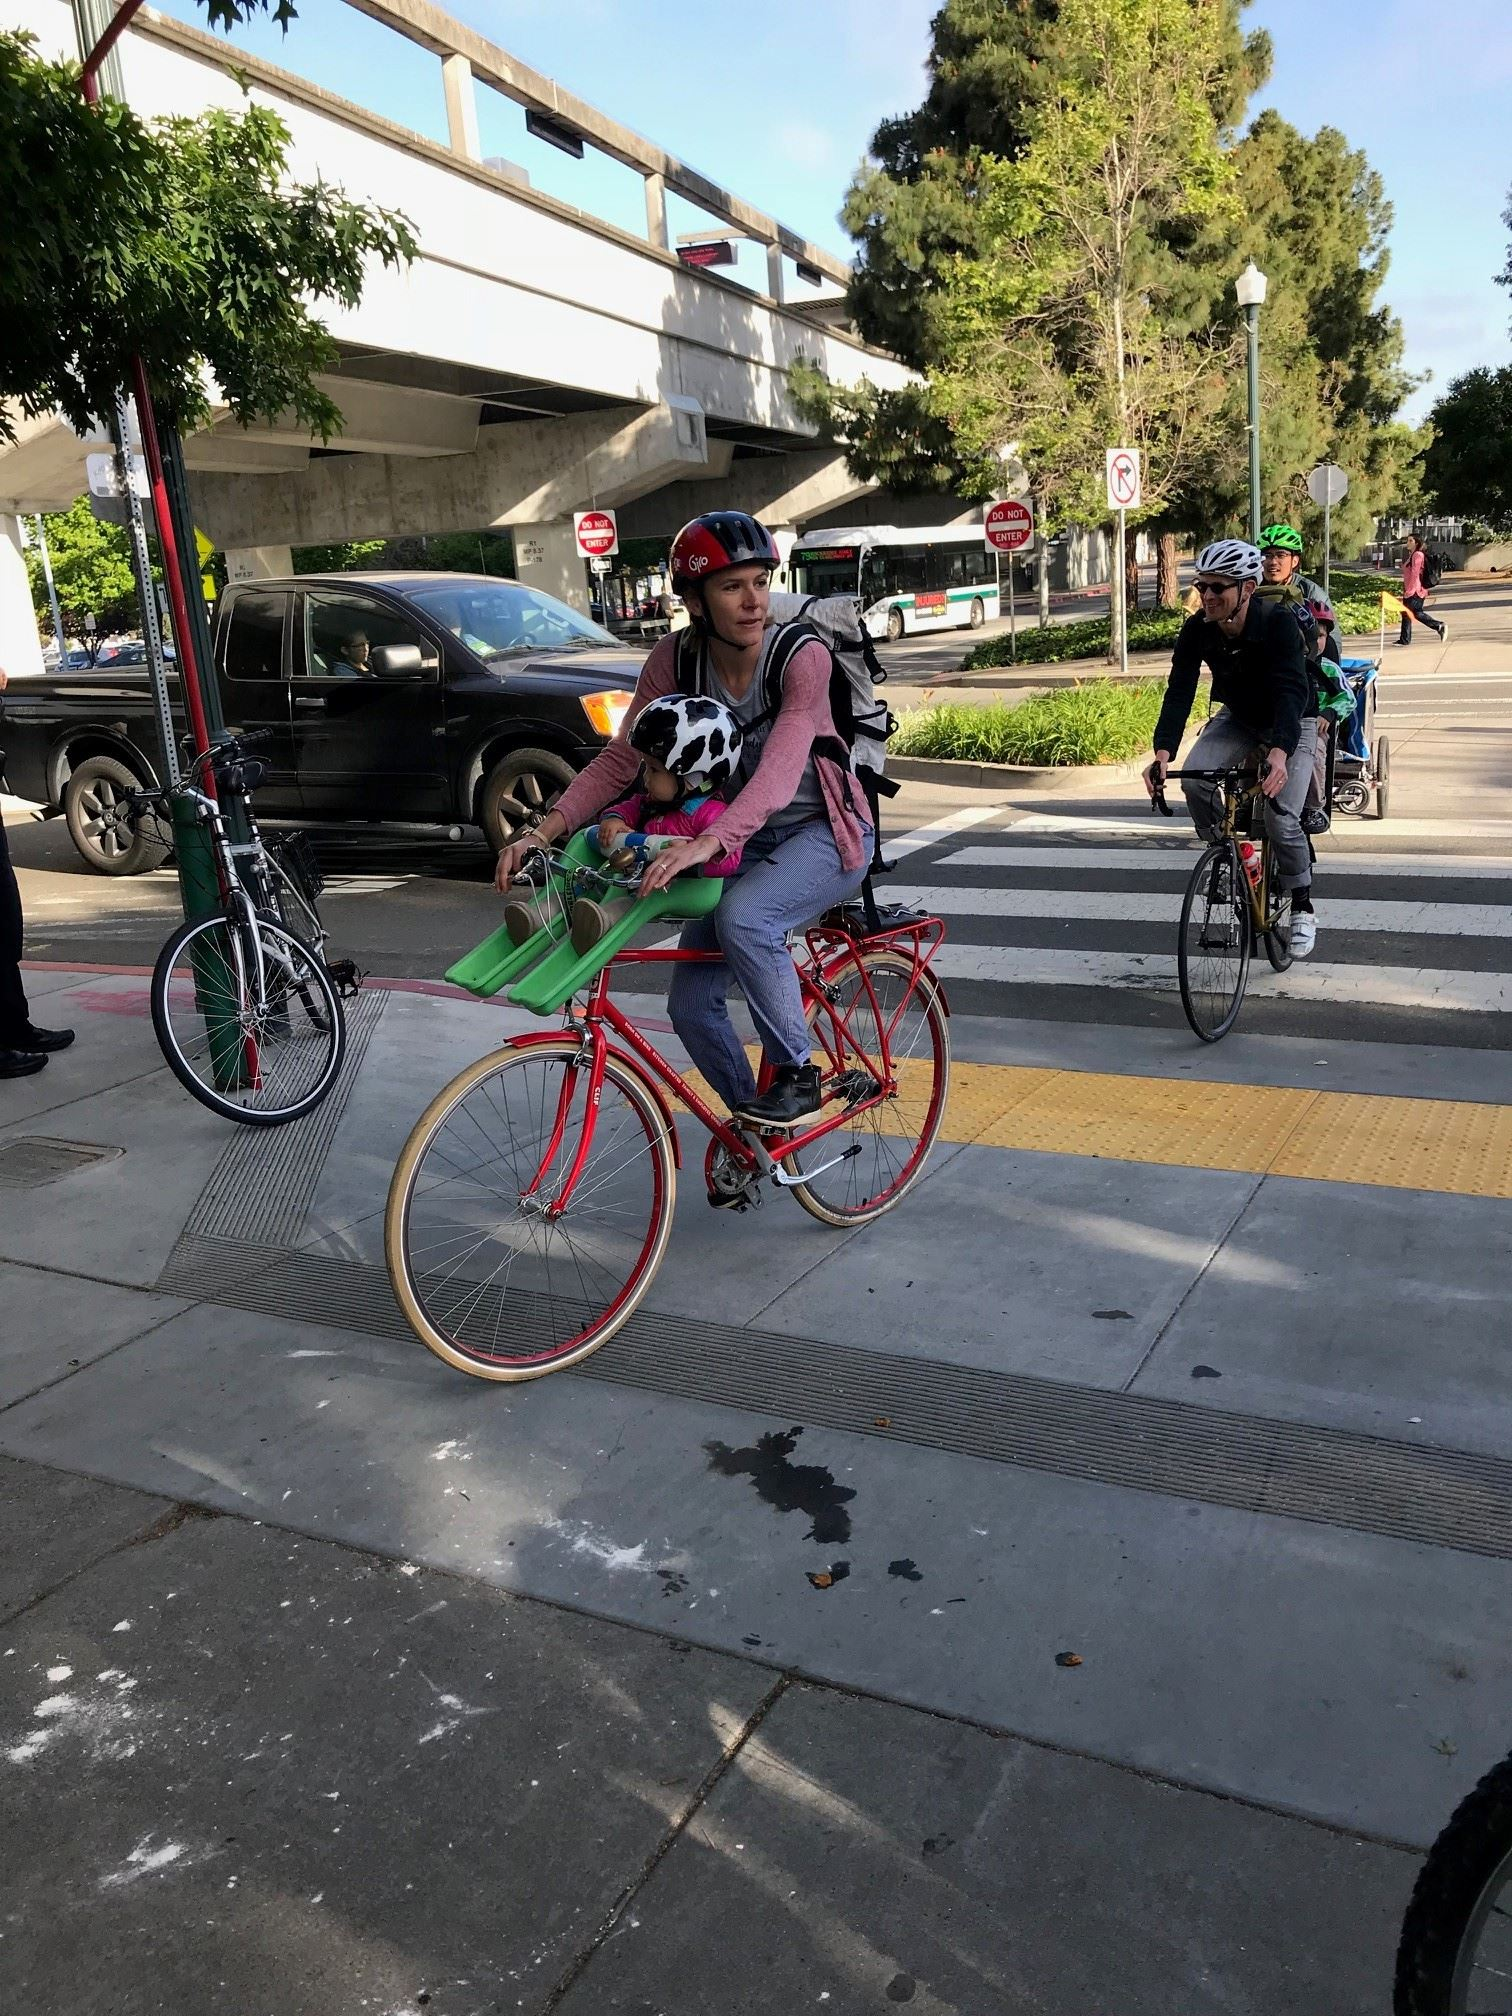 Bikers at Bike to Work Day 2018